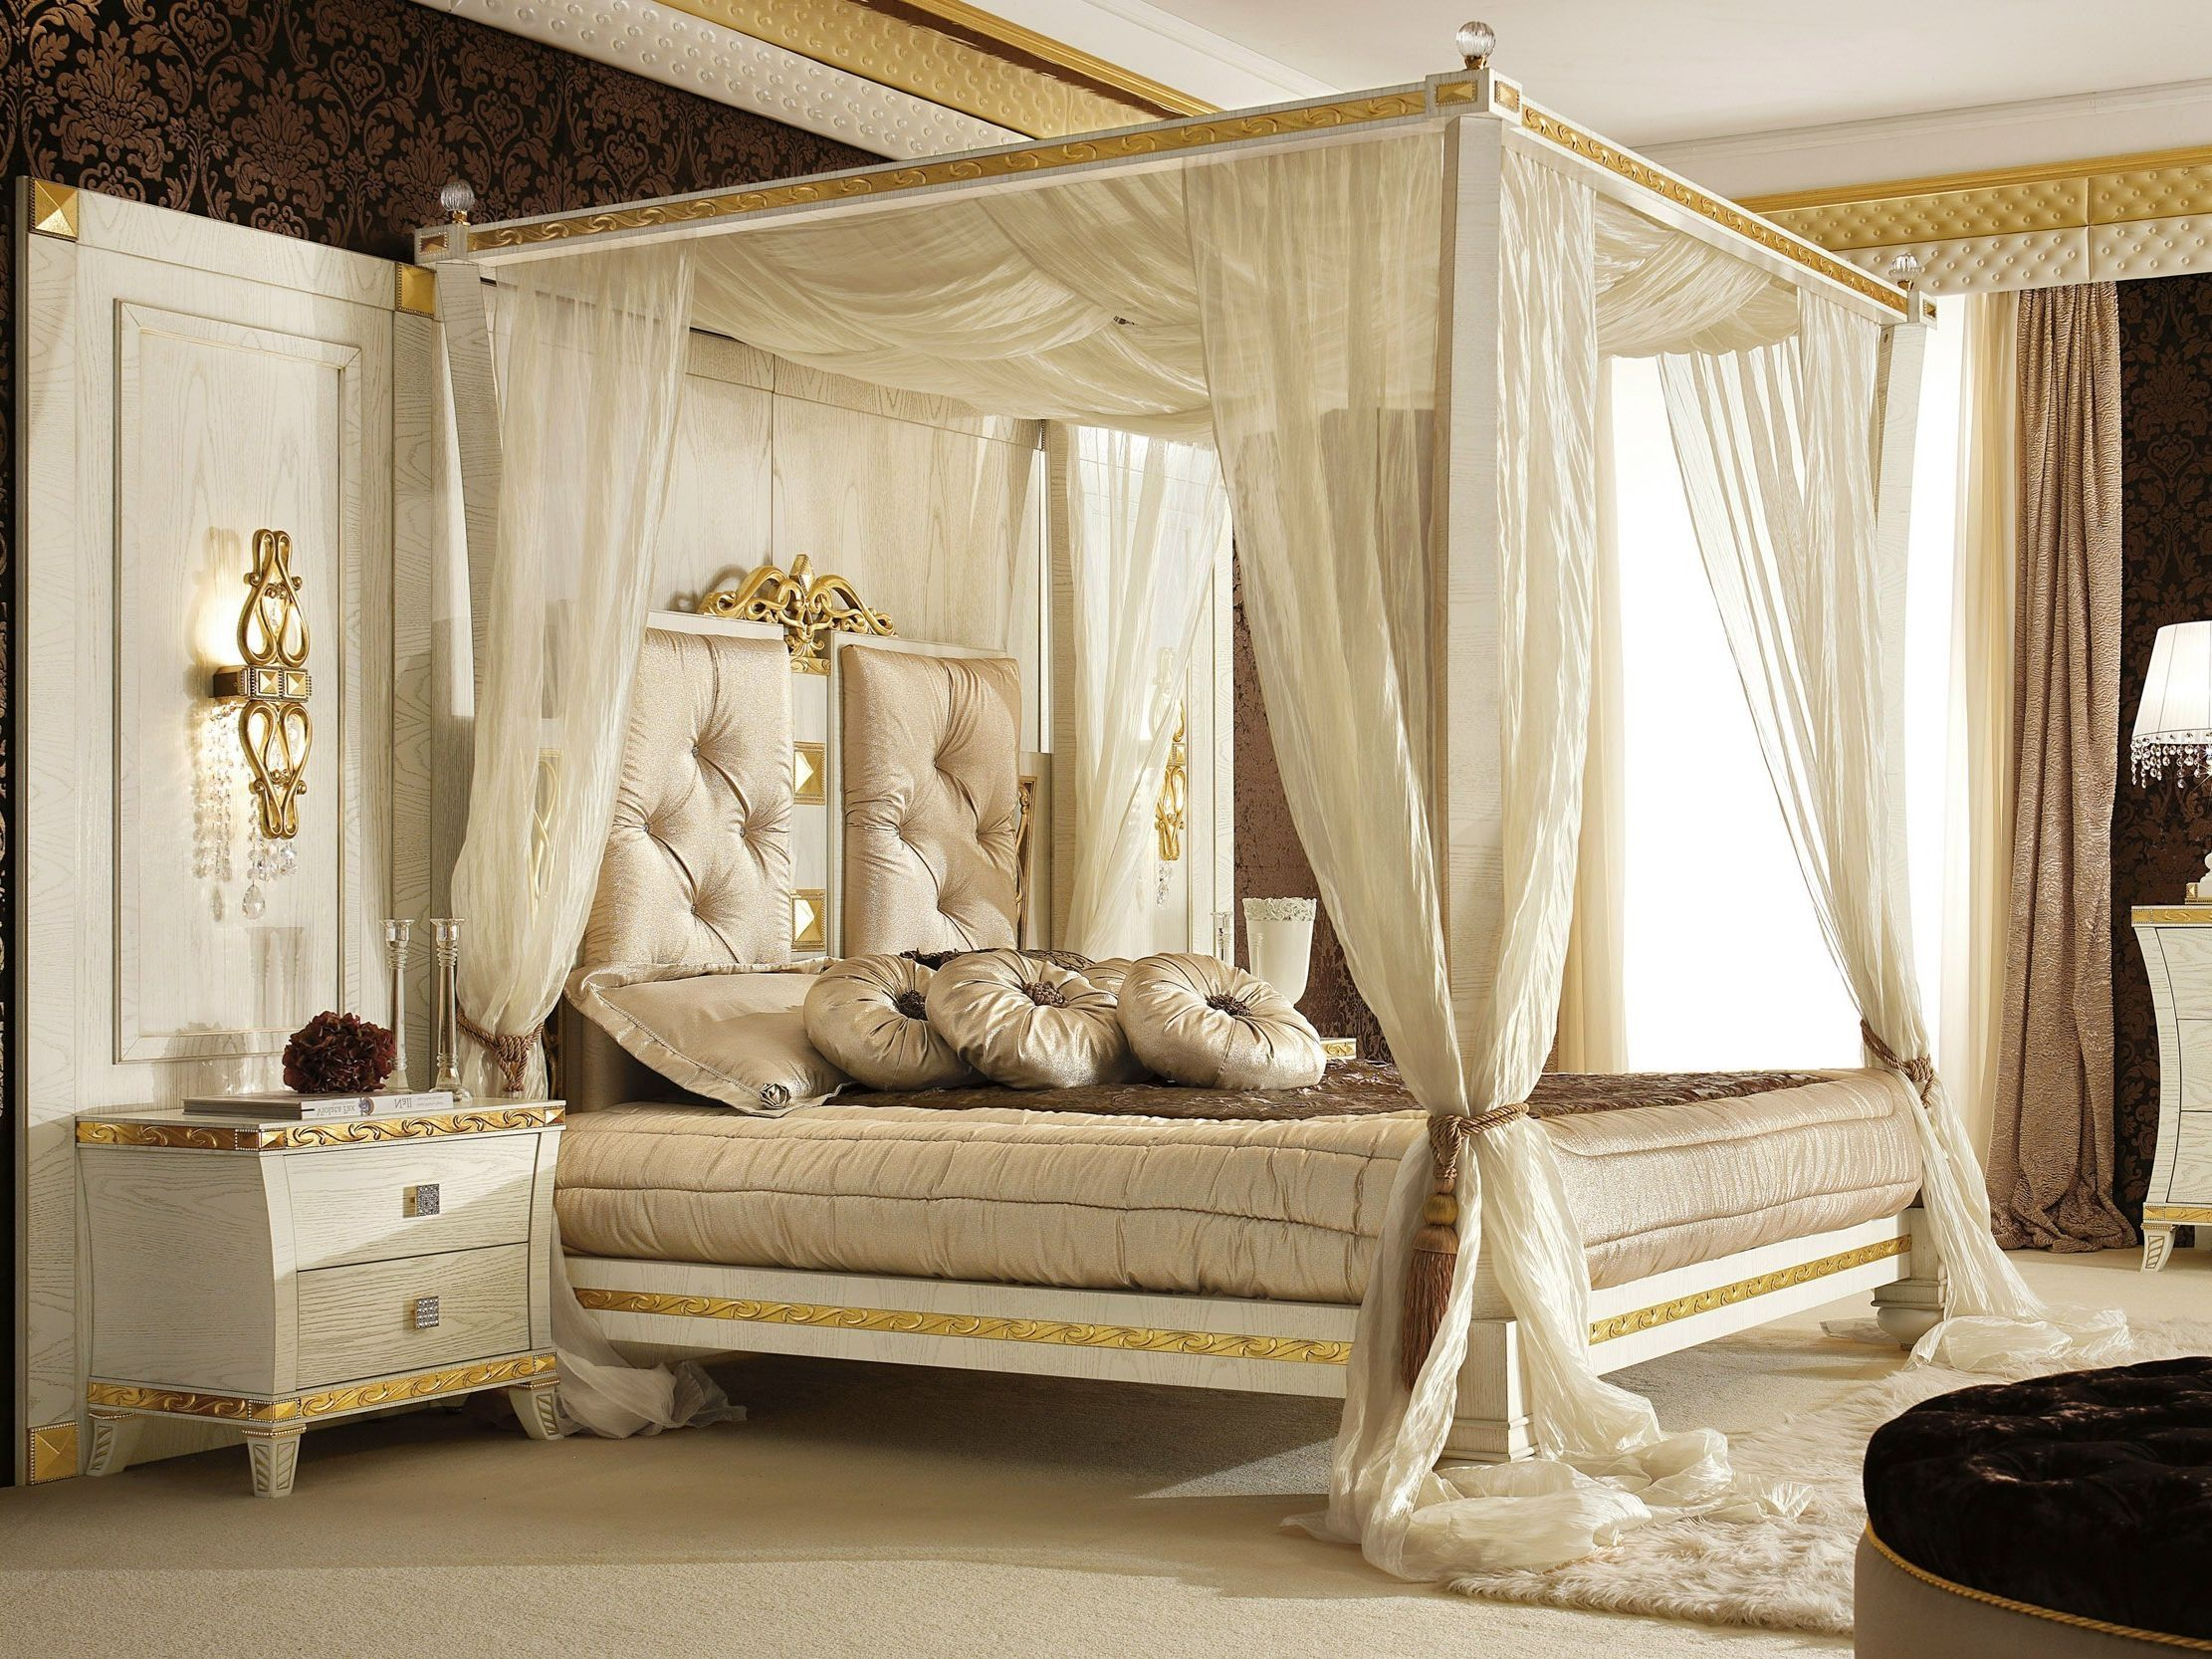 Modern canopy bed curtains - Picture Of Superb Canopy Frame Modern Bed Curtains Decorating Idea